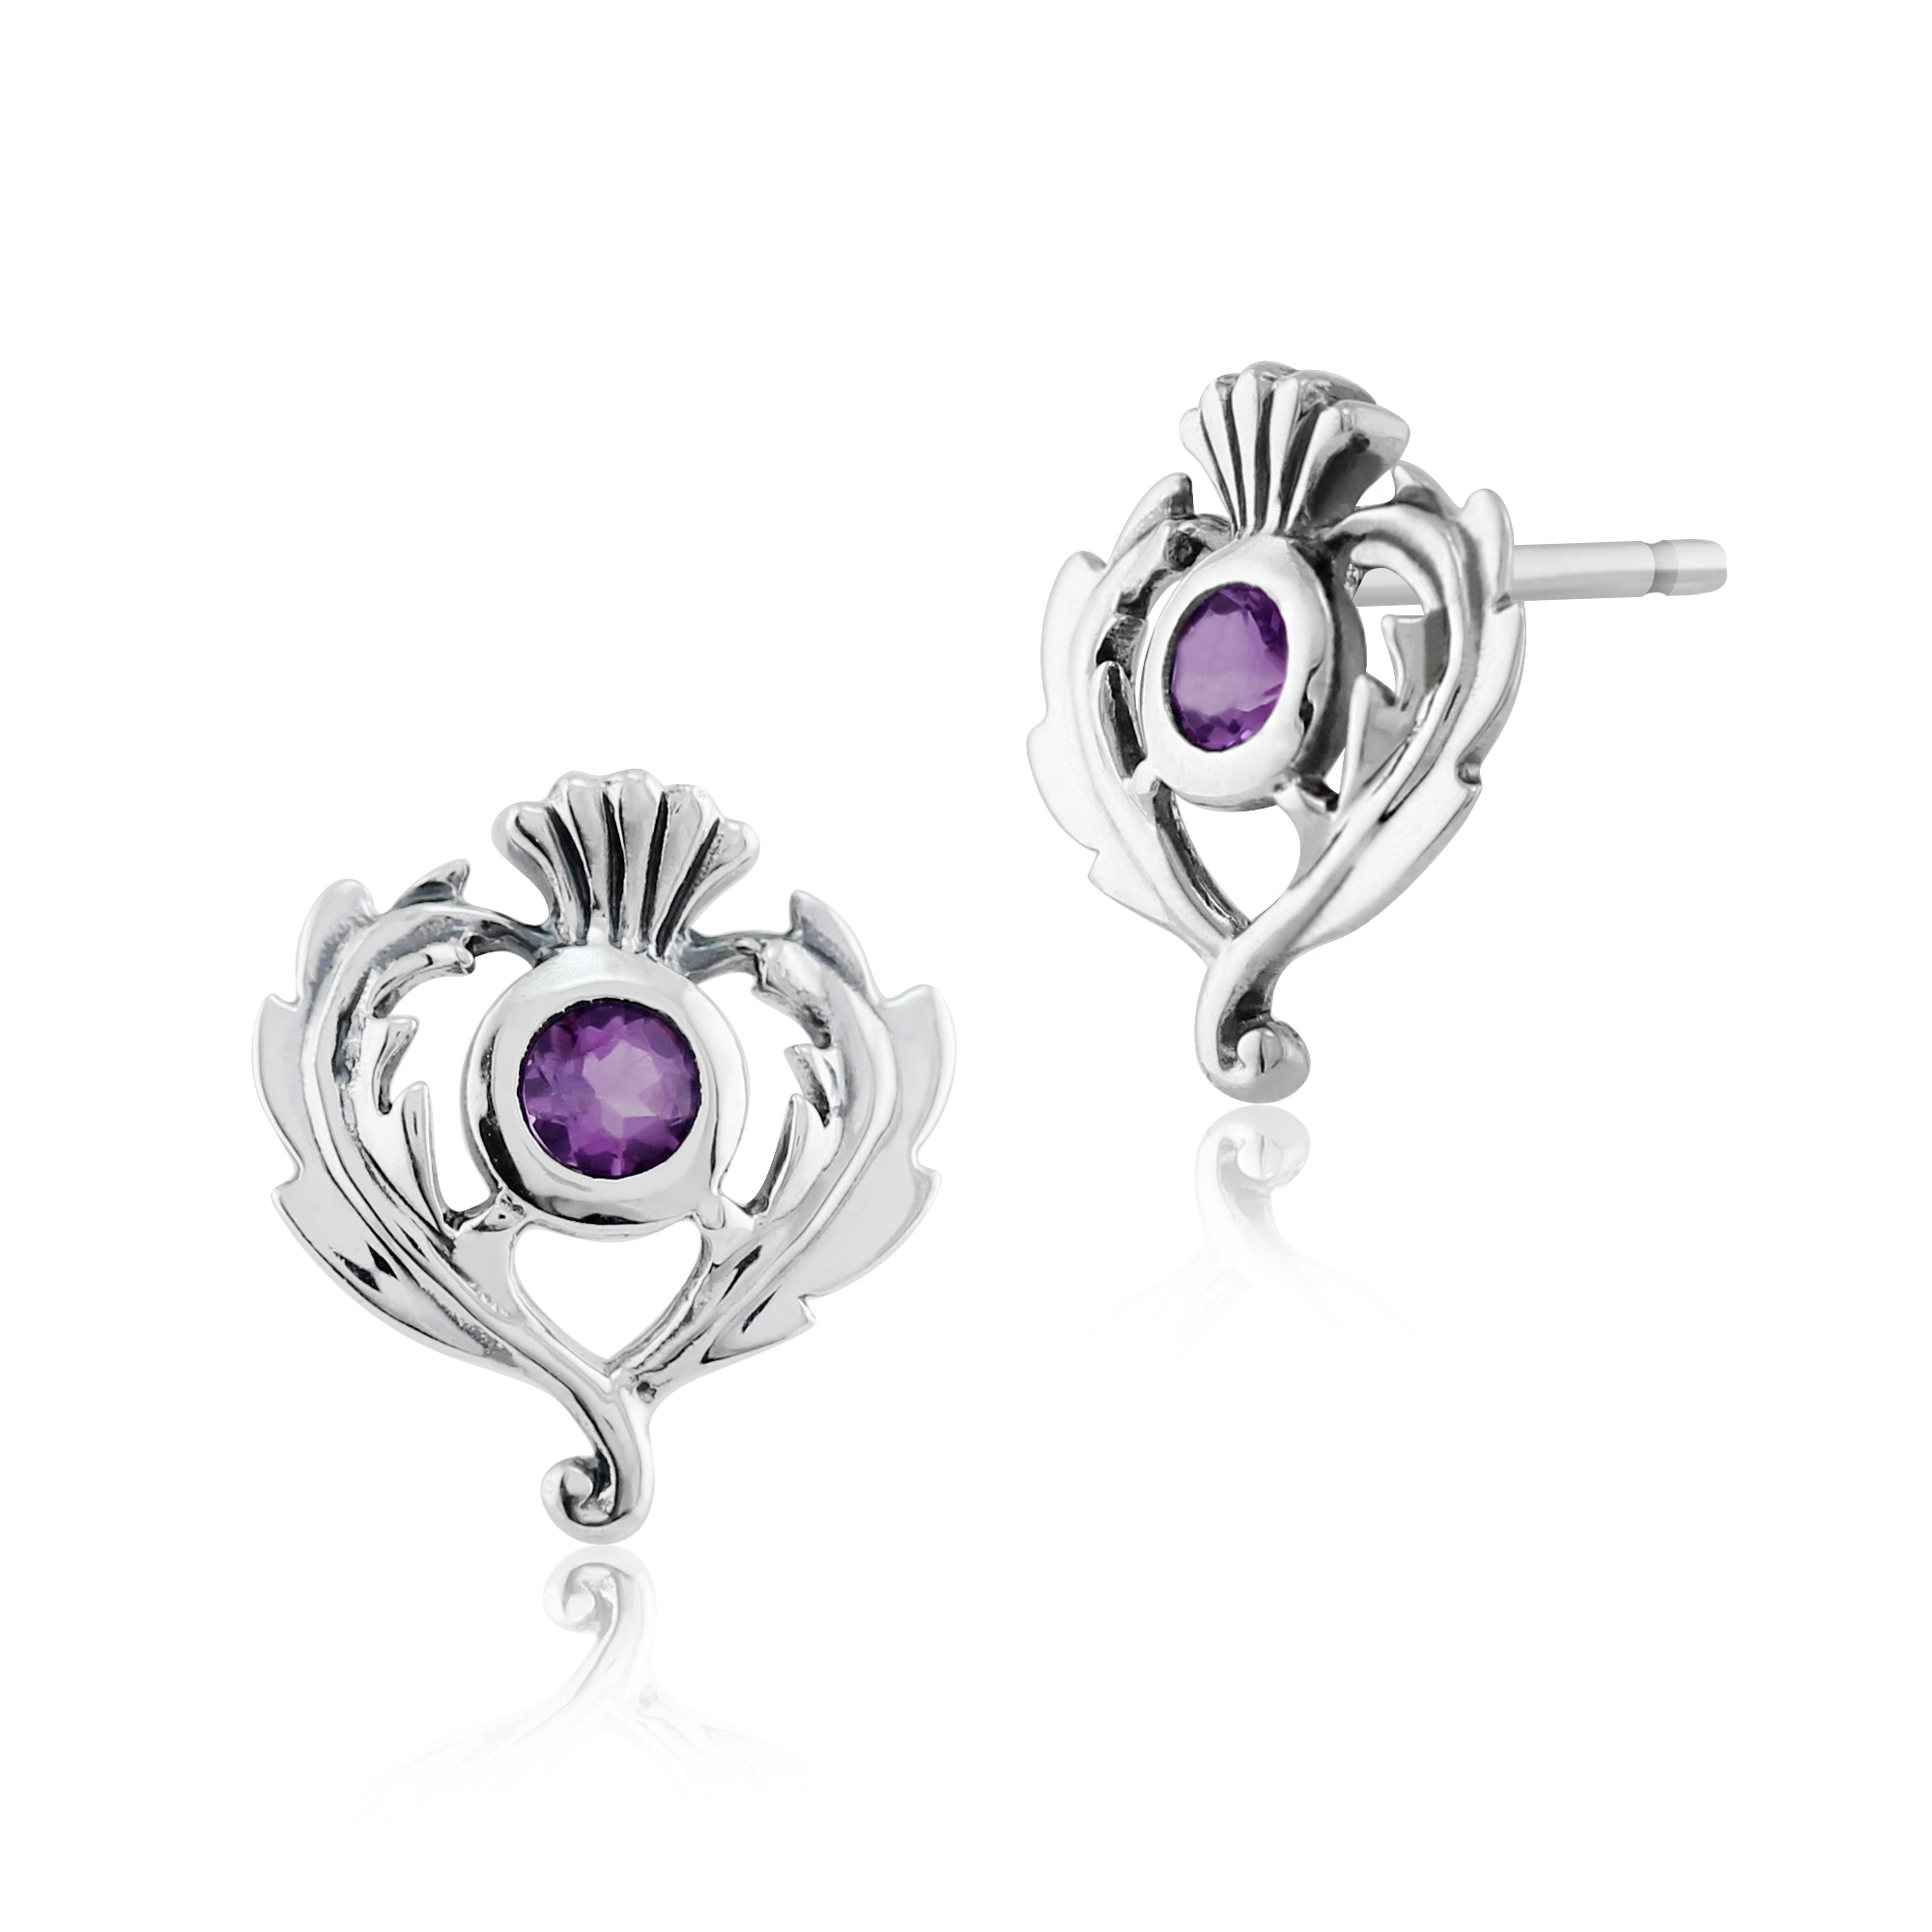 Gemondo 925 Sterling Silver 0.11ct Amethyst Thistle Style Stud Earrings